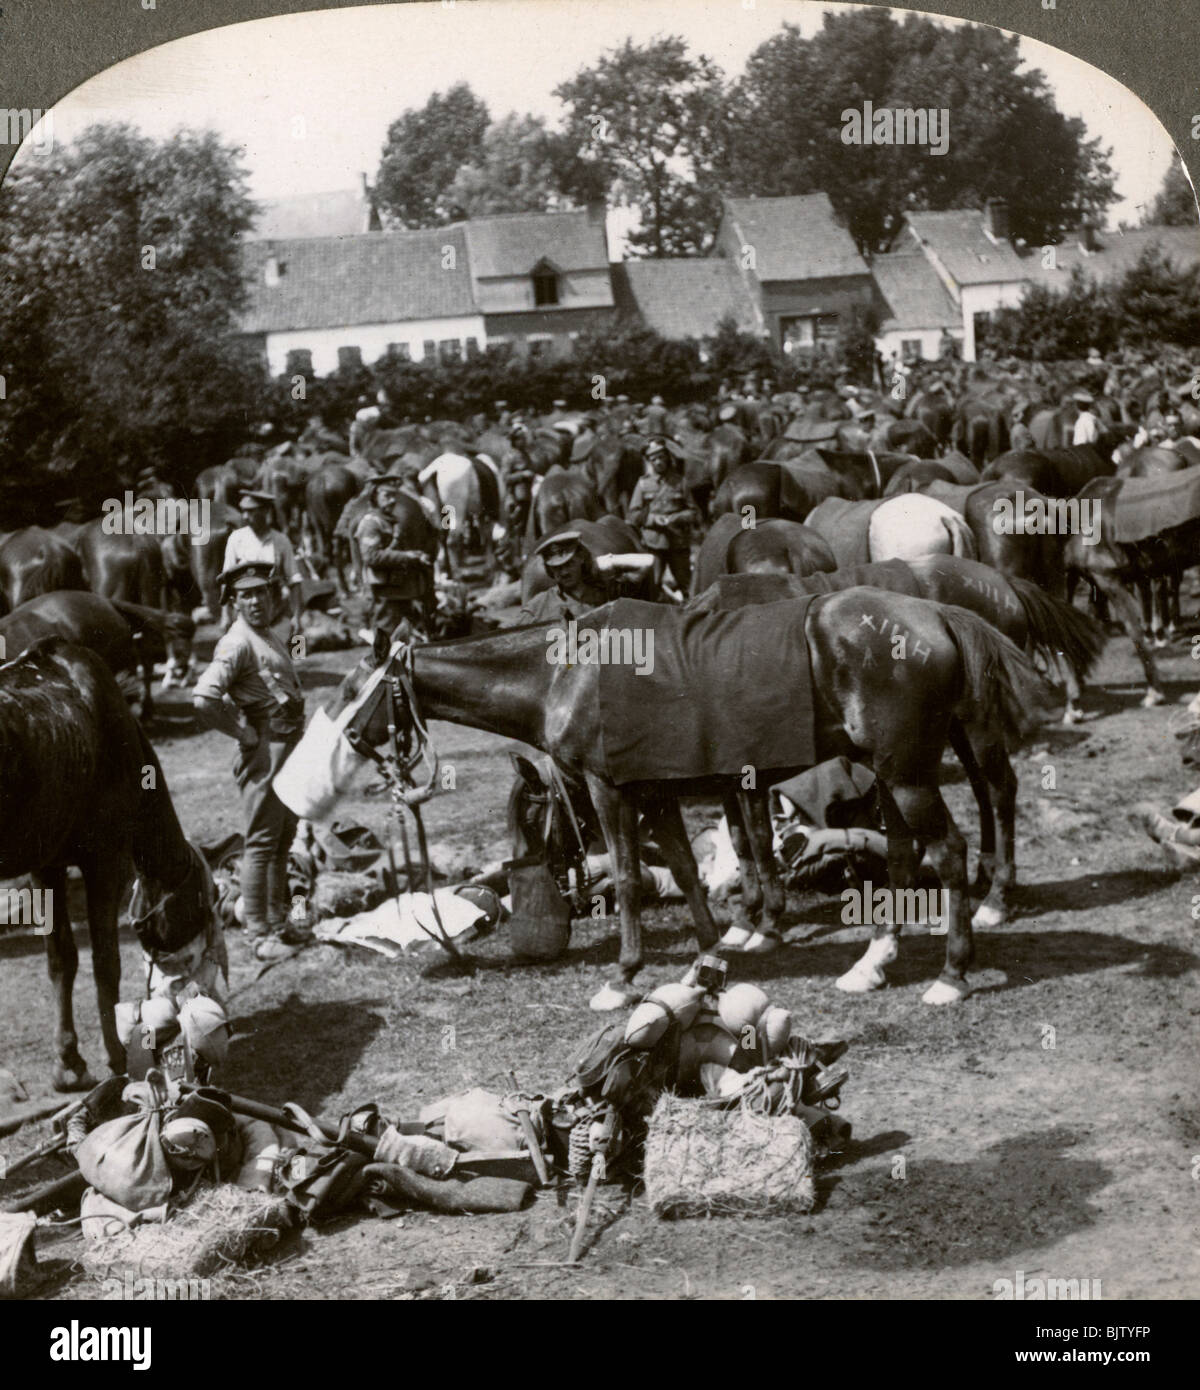 Troops feeding their horses and resting on the march, World War I, 1914-1918. - Stock Image